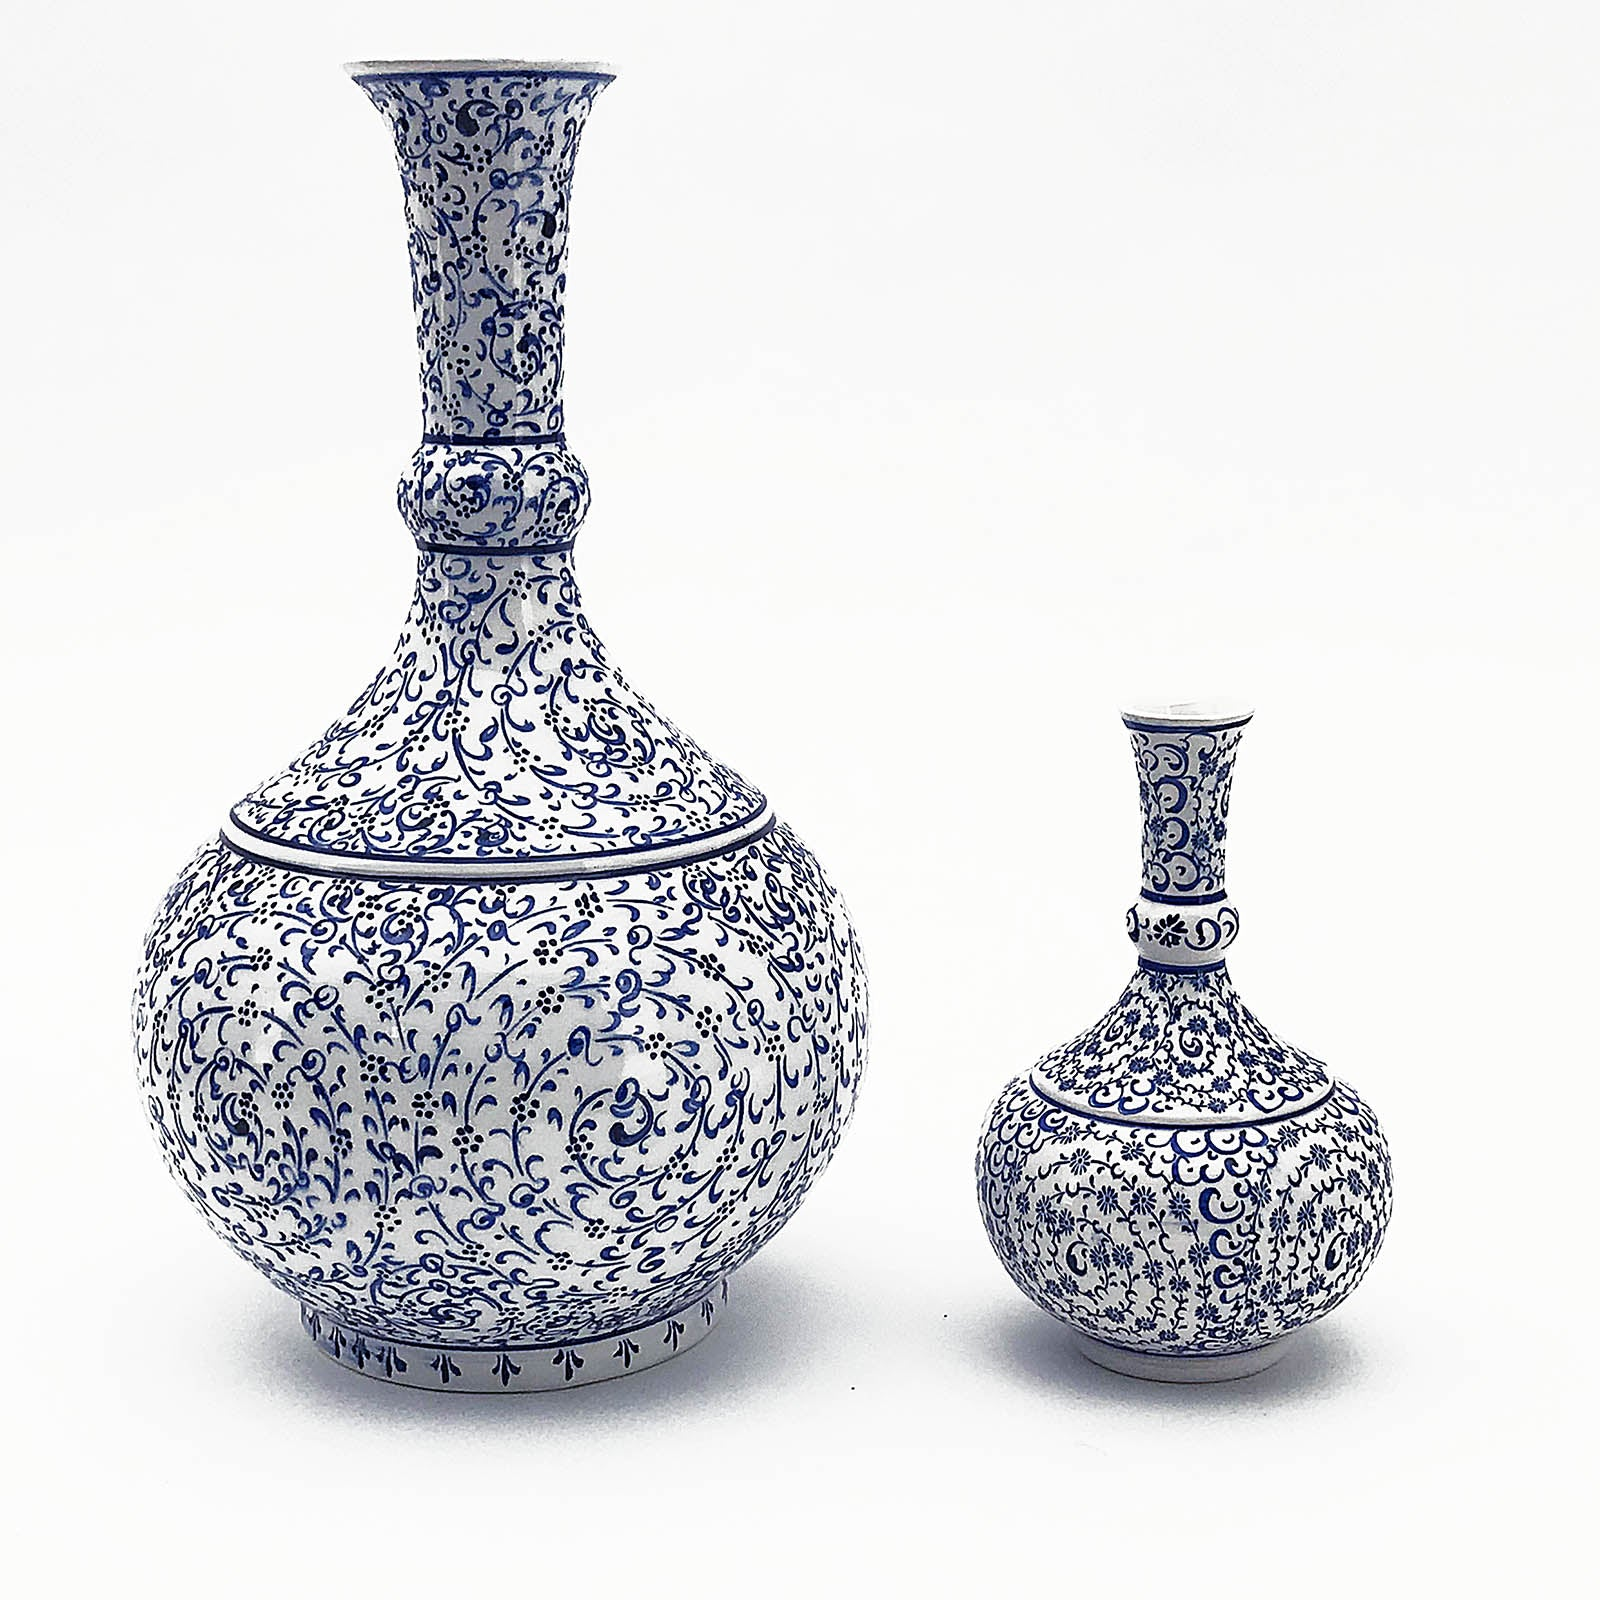 Handmade   Kutaya Turkish ceramic Vase  KUC006